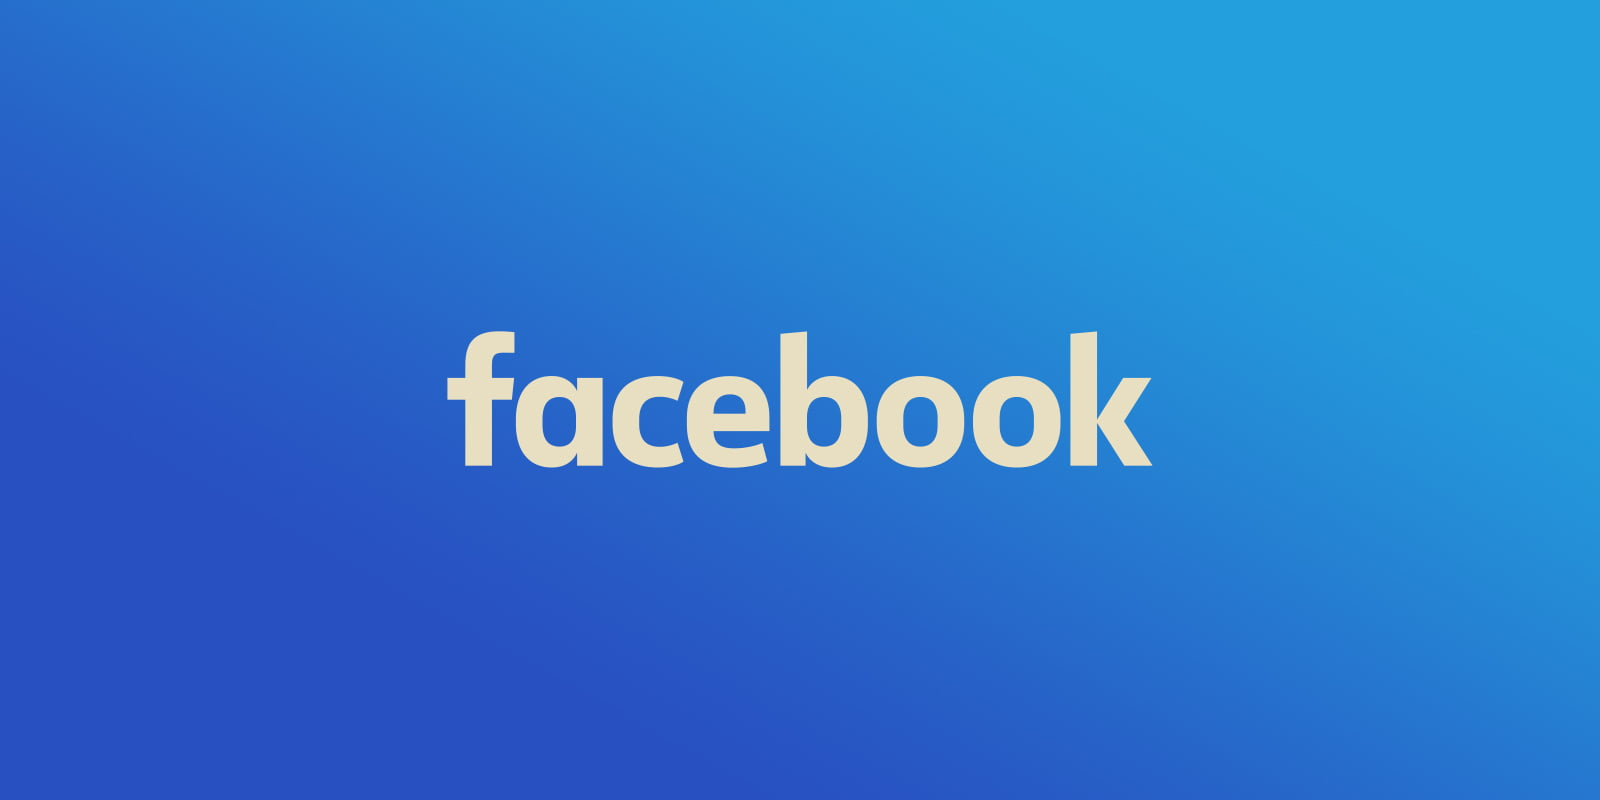 Facebook plans to bring Clubhouse-like features in its app